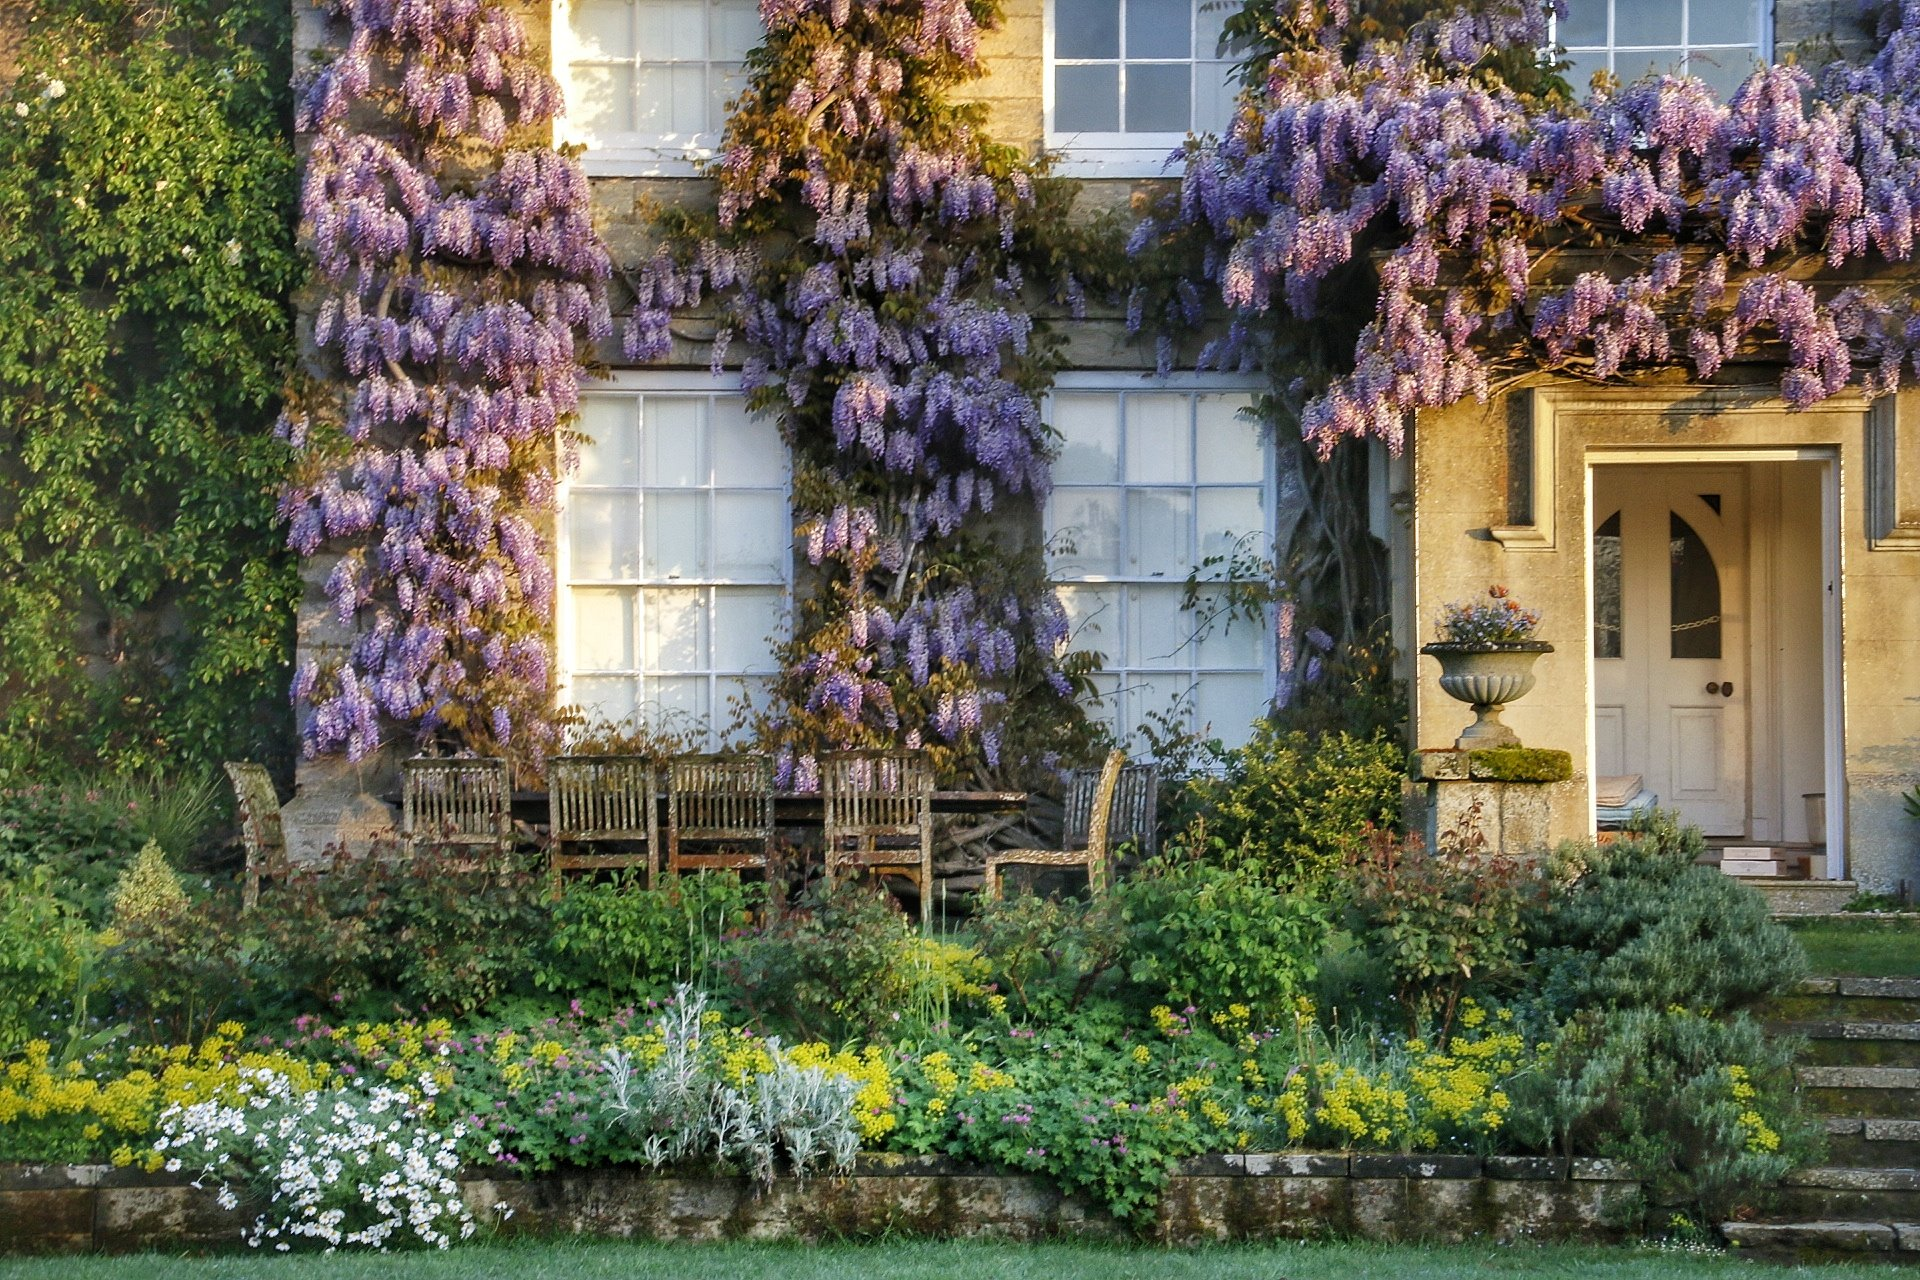 Wisteria sinensis at Fittleworth House, West Sussex